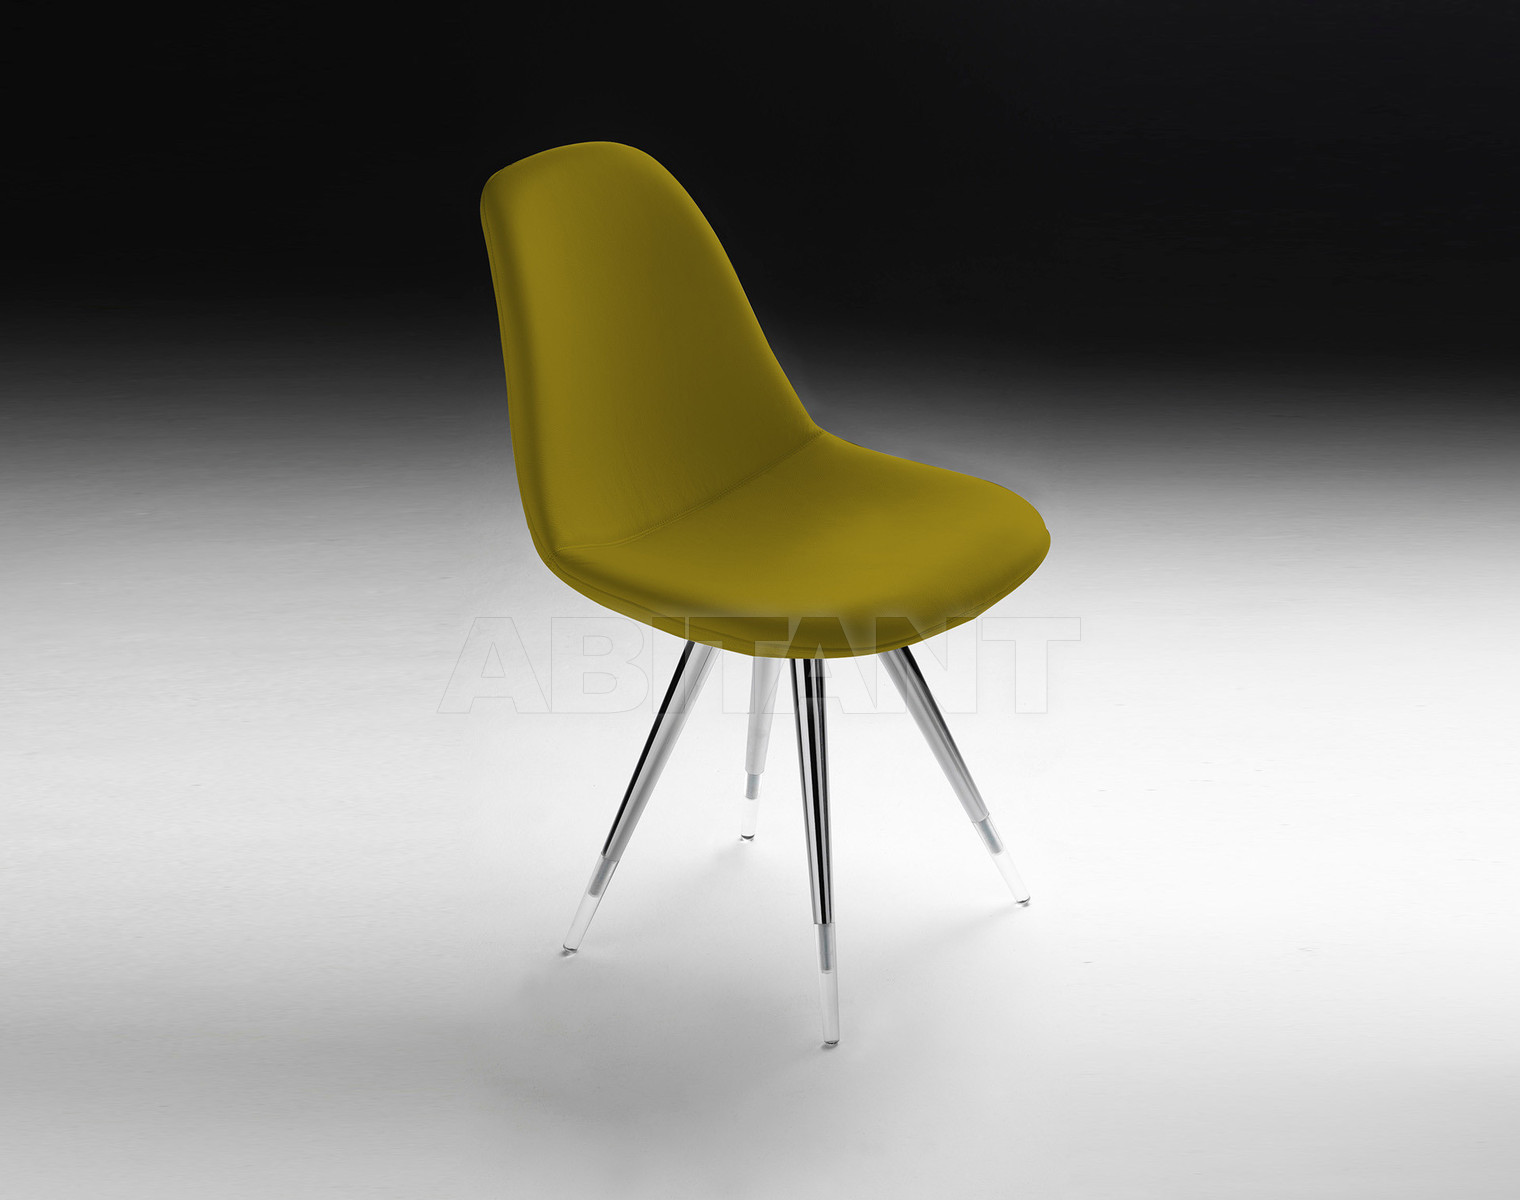 Купить Стул Kubikoff Sander Mulder Angel'POP'Chair' 06